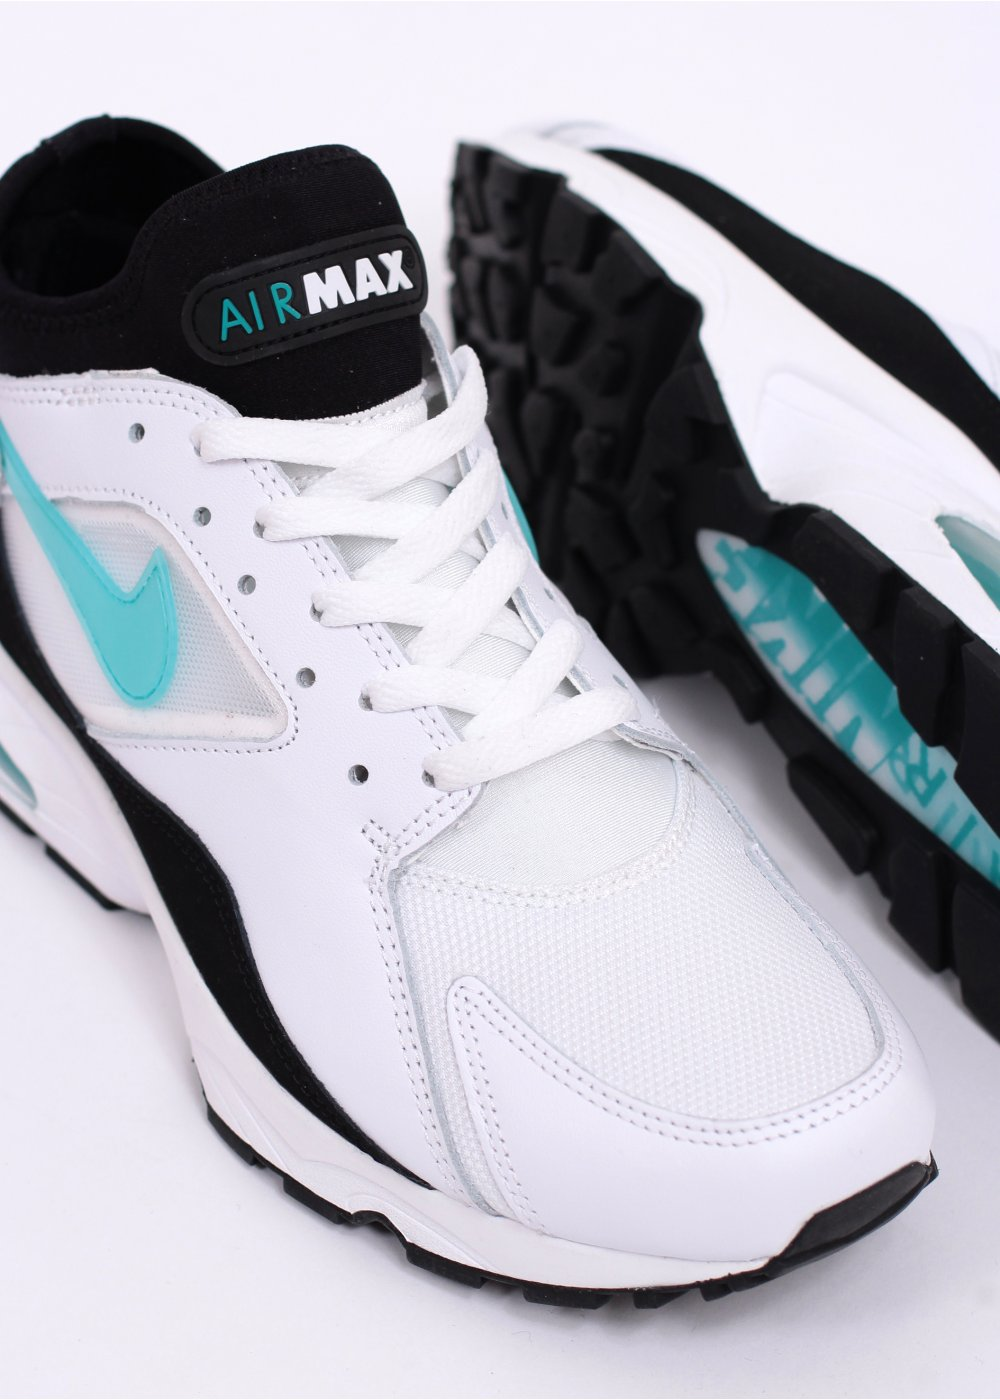 88741245cb6452 1e263 5f299 e57c4  italy air max 93 trainers white black 0ad1a 9a646